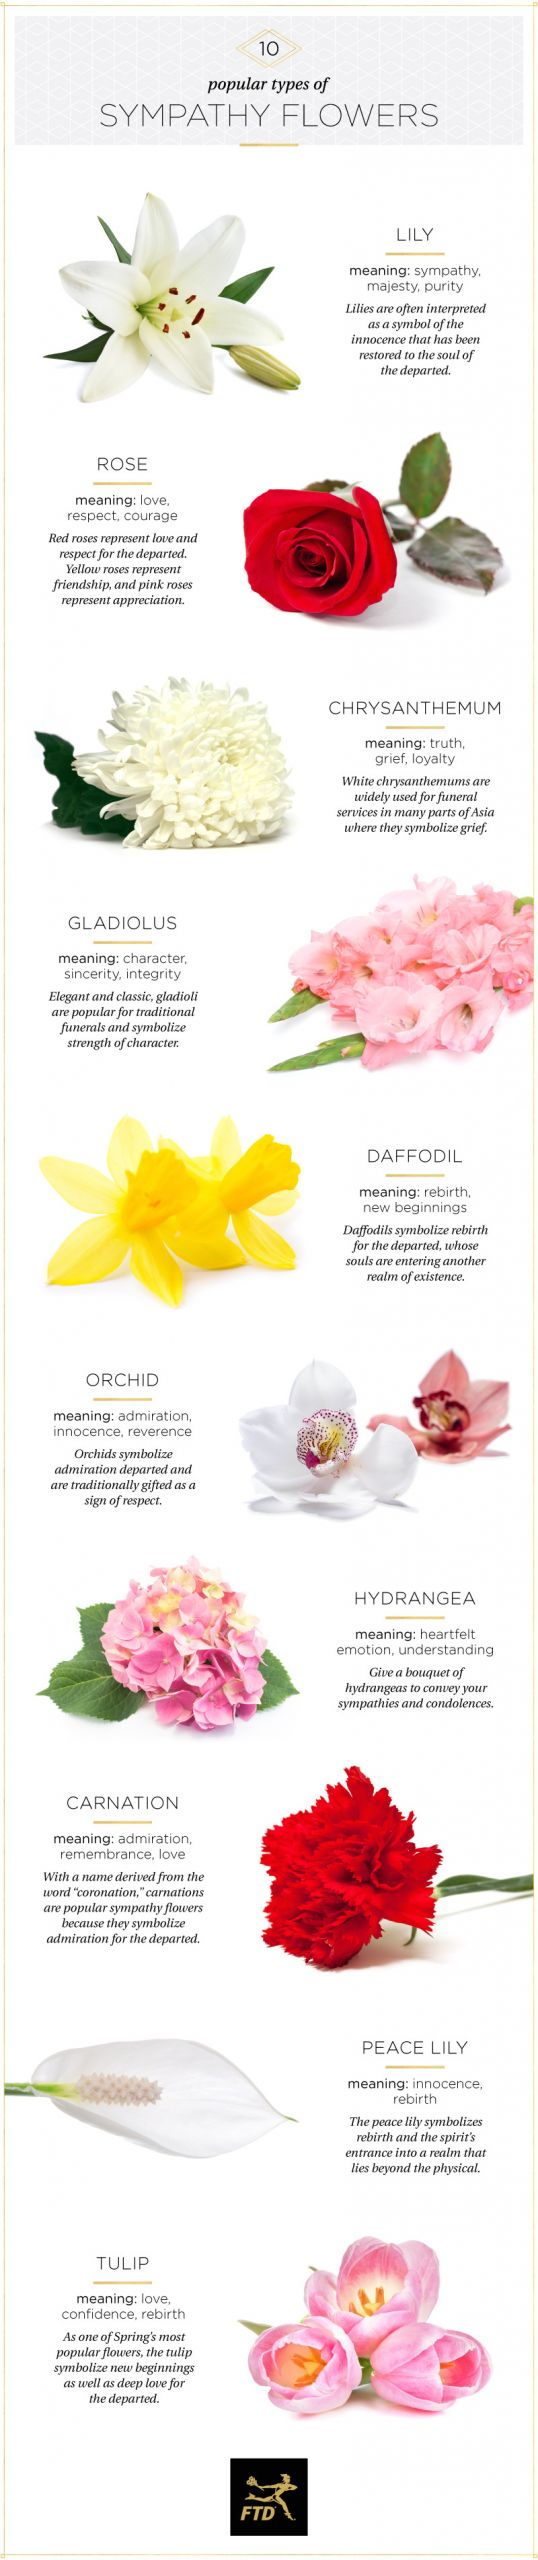 What Do You Put On A Funeral Flower Card 13 Helpful Tips for Proper Funeral Etiquette Ftd Com